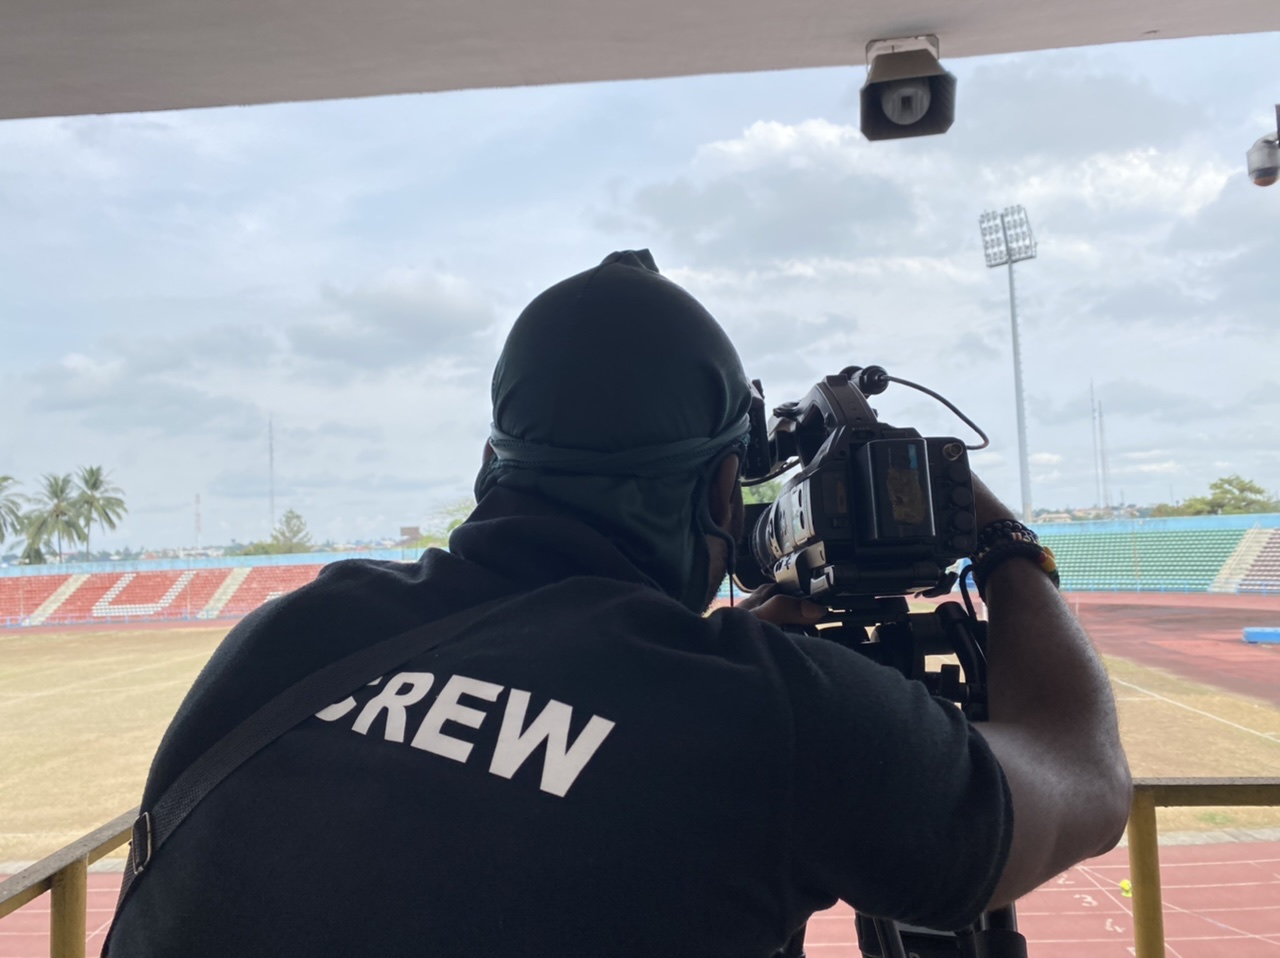 RE : ROVERS vs VFC - ACCESS GRANTED TO VFCTV CREW